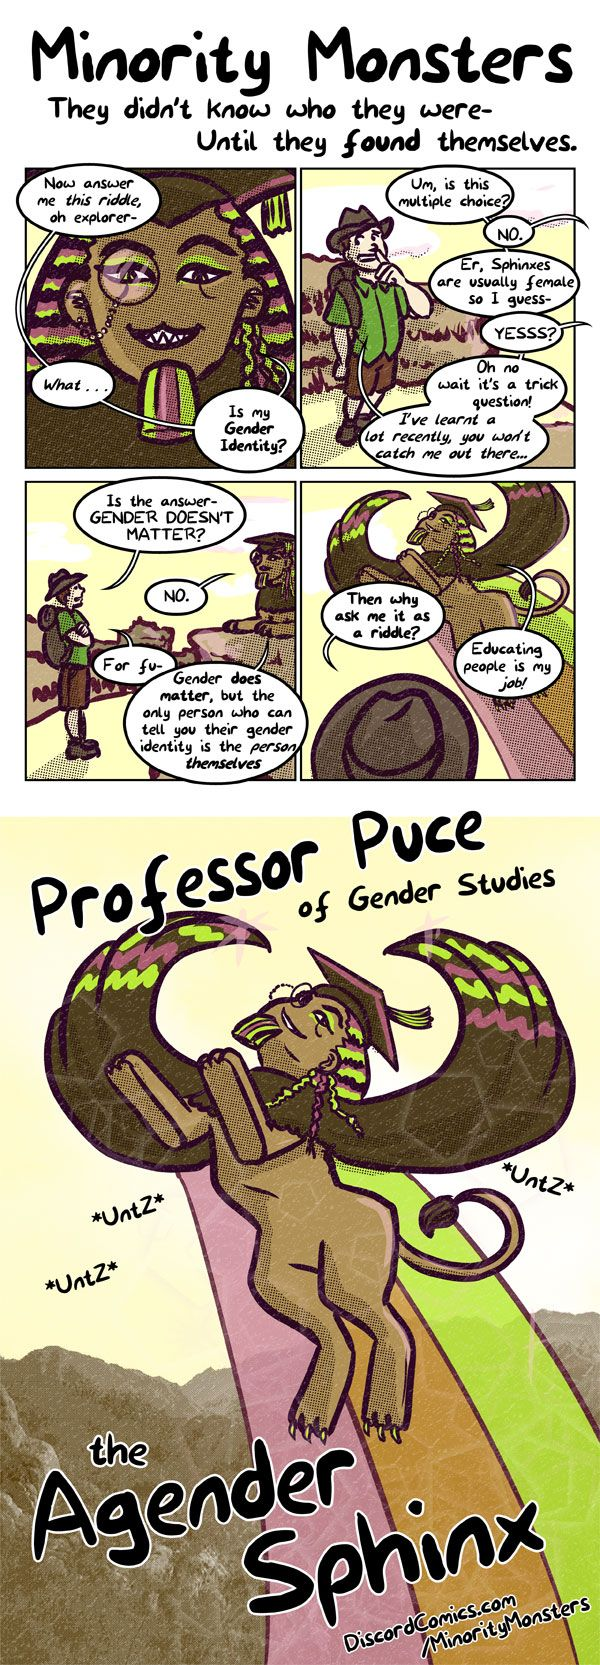 Minority Monsters–Professor-Puce-the-Agender-Sphinx By Tab Kimpton